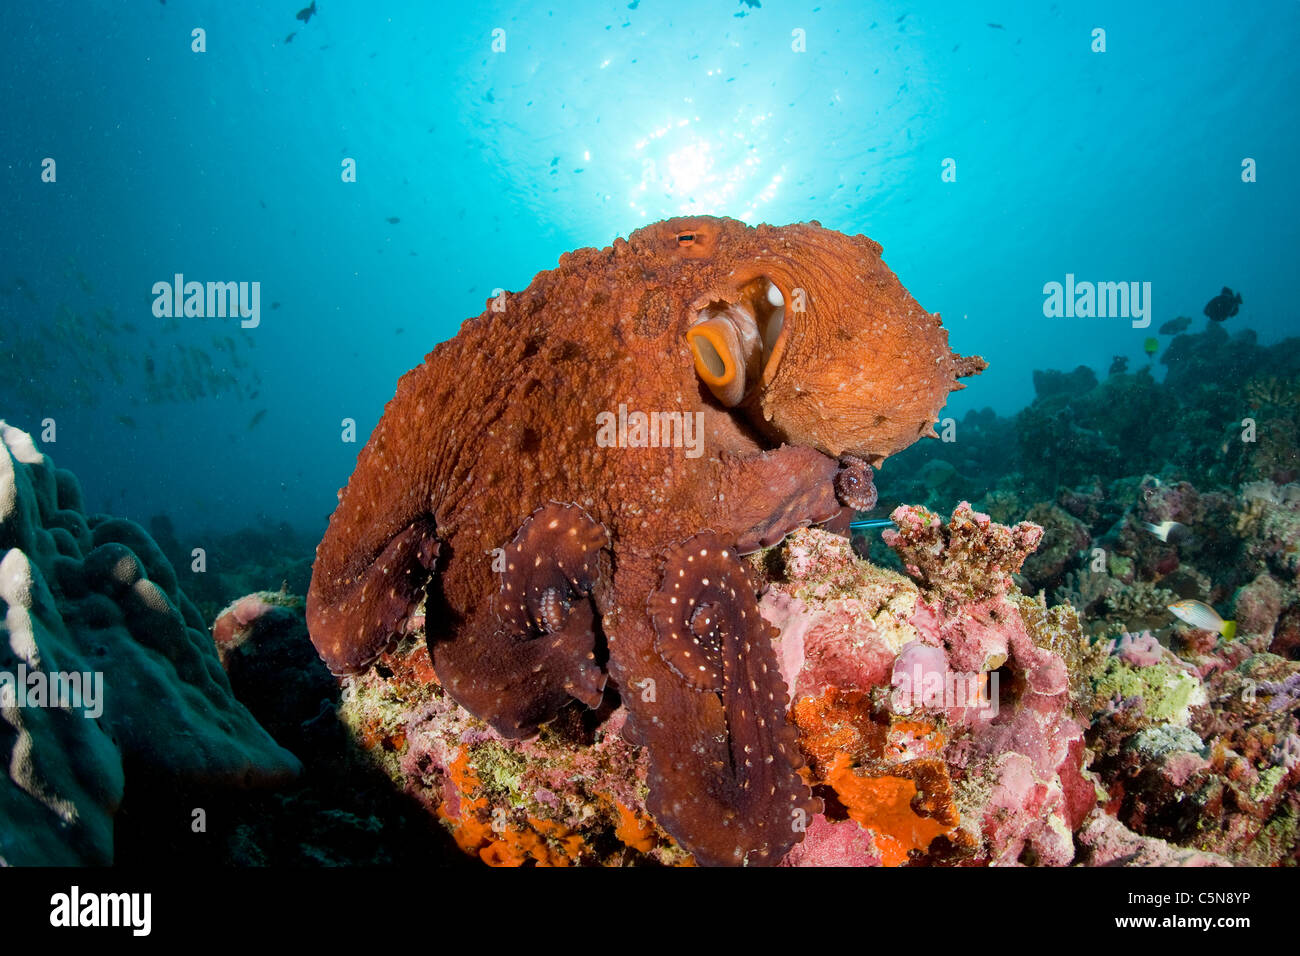 Common Octopus on Coral Reef, Octopus vulgaris, Indian ...